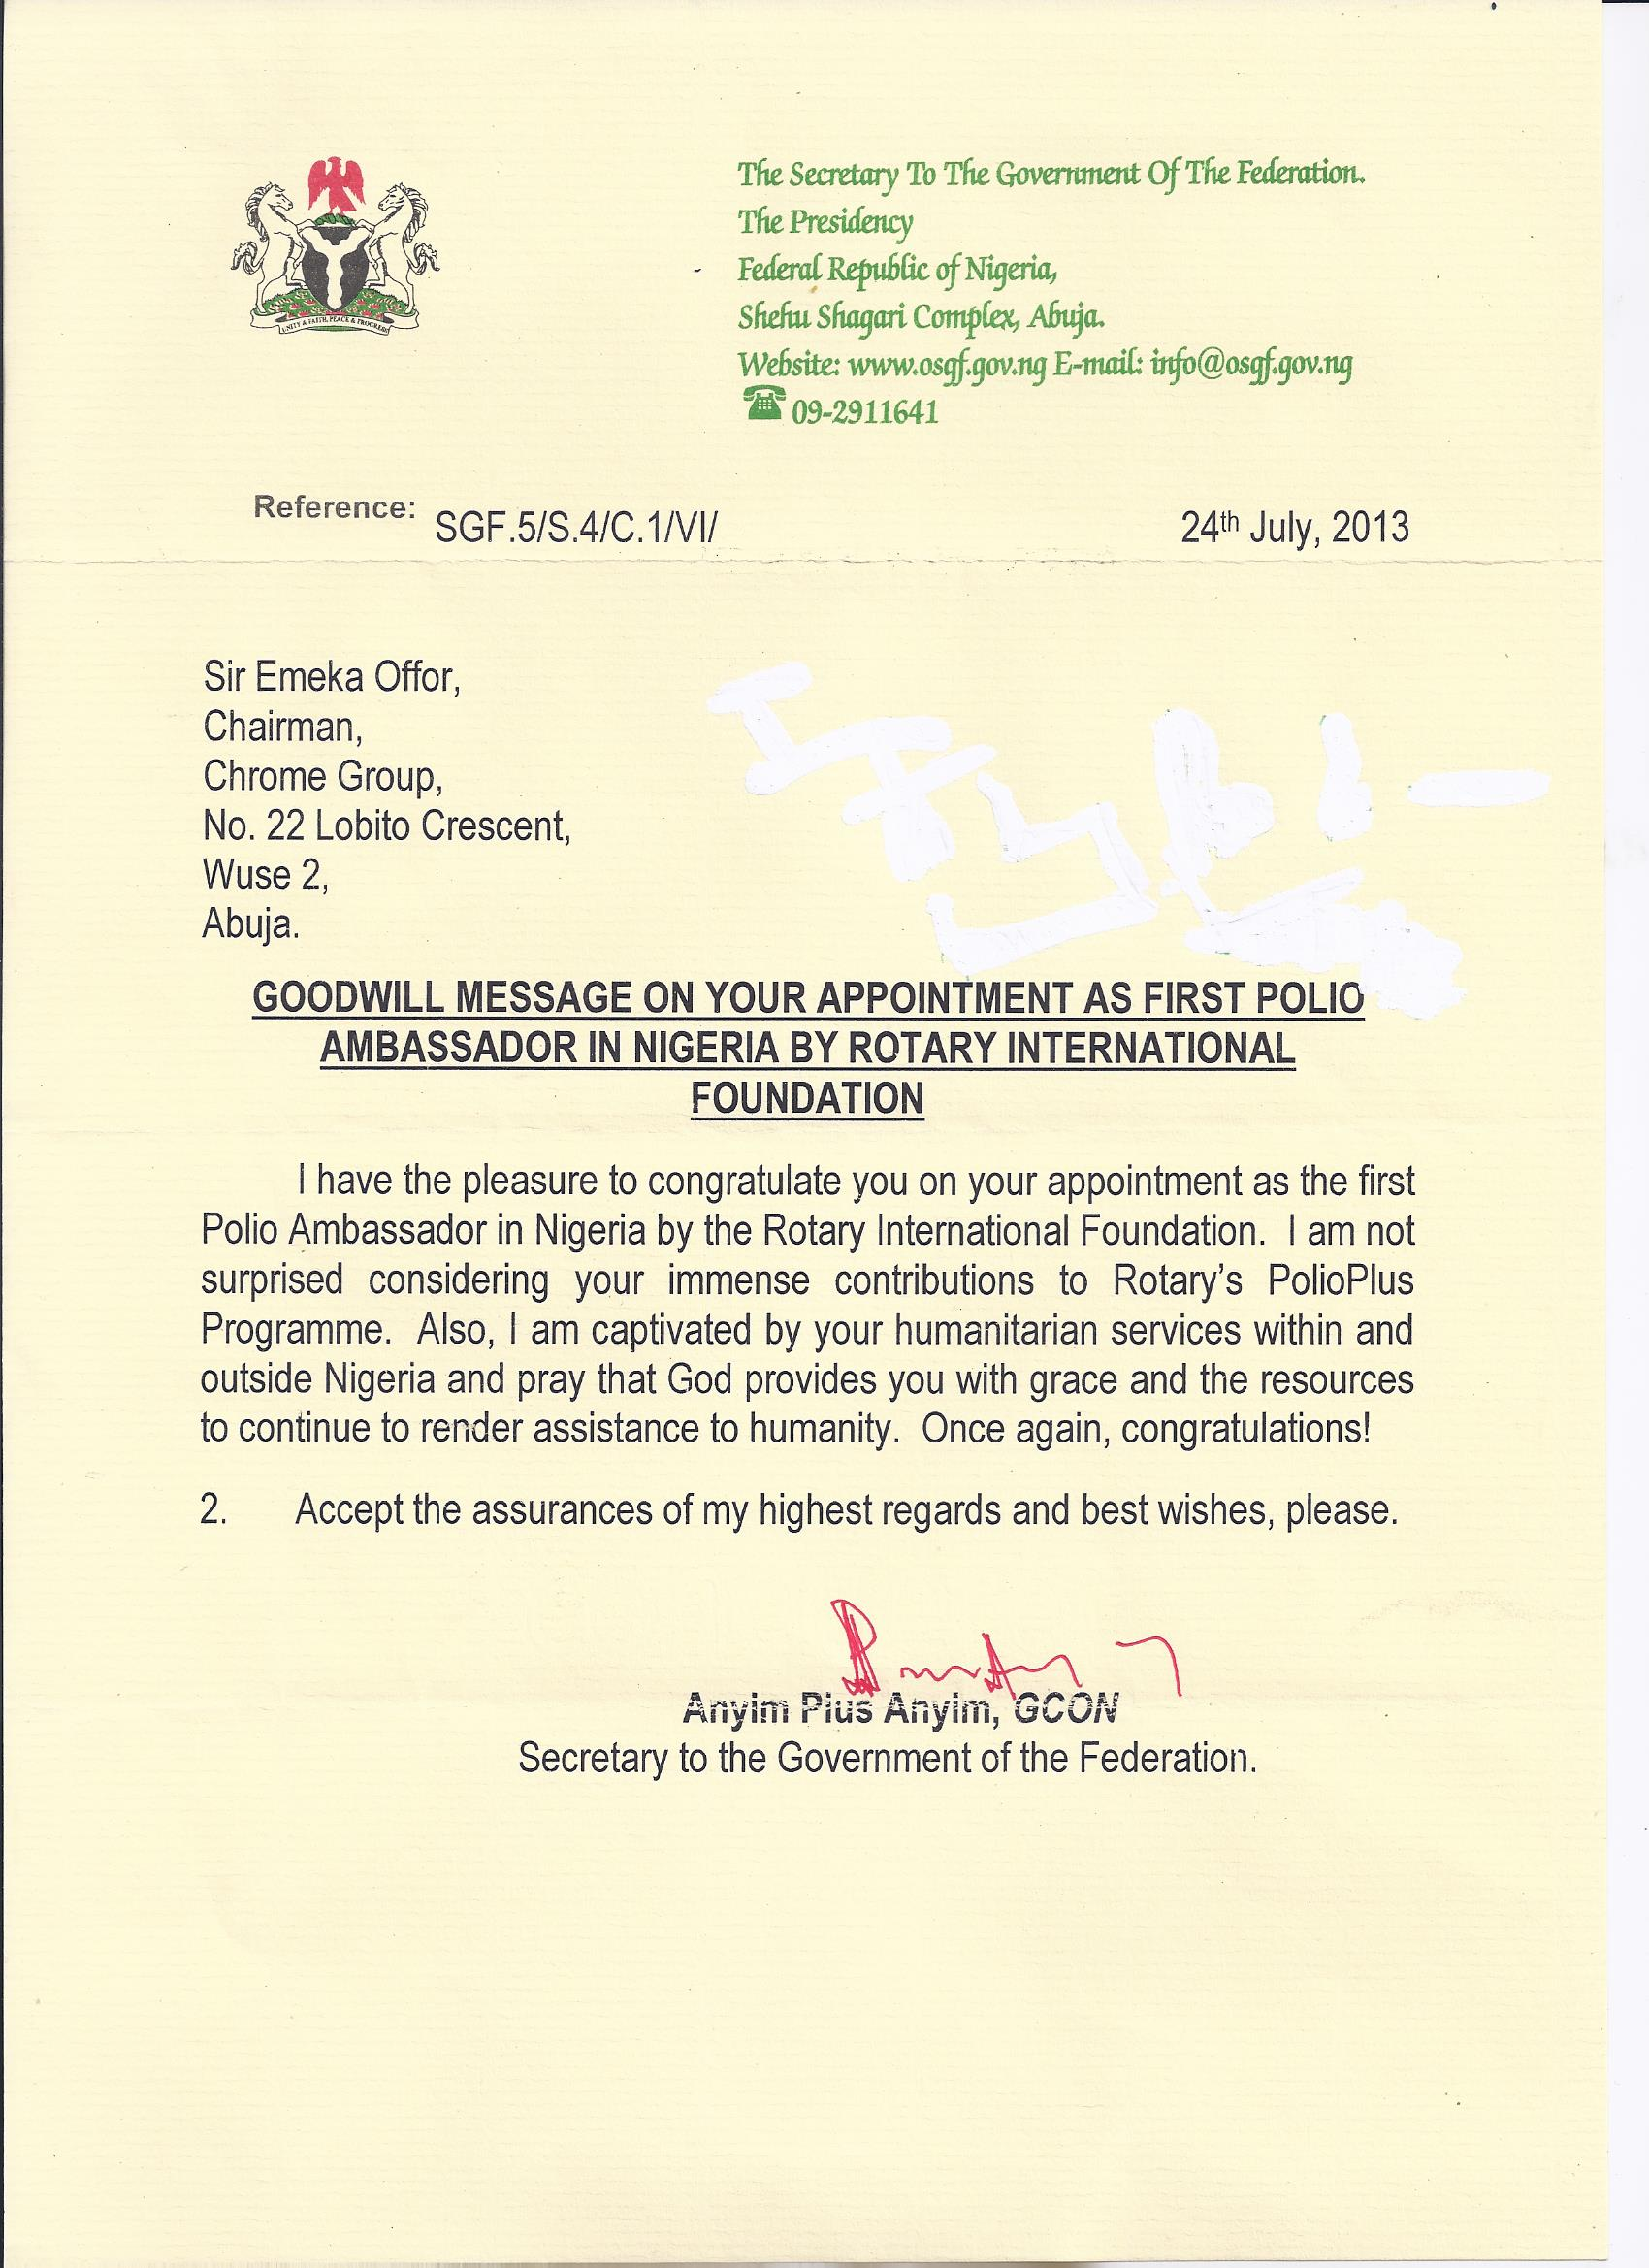 Letter from Secretary to the Government of the Federation